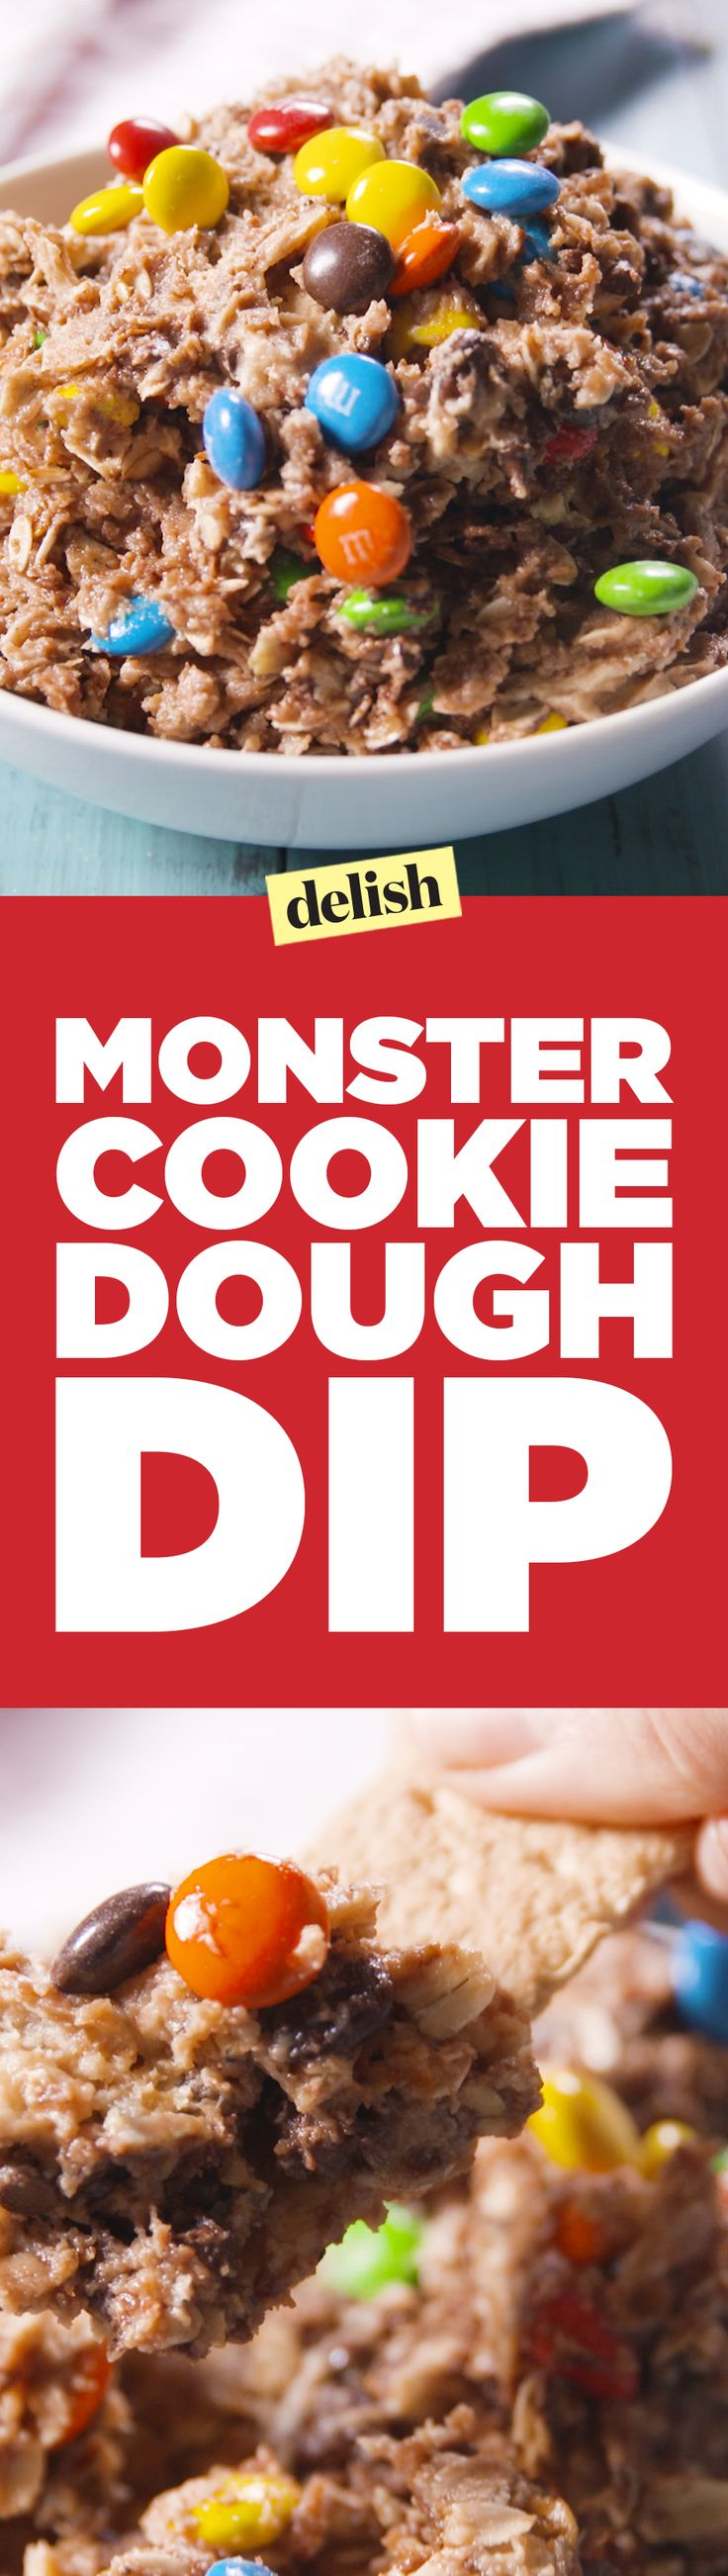 Monster cookie dough dip is scary good. Get the recipe on Delish.com.